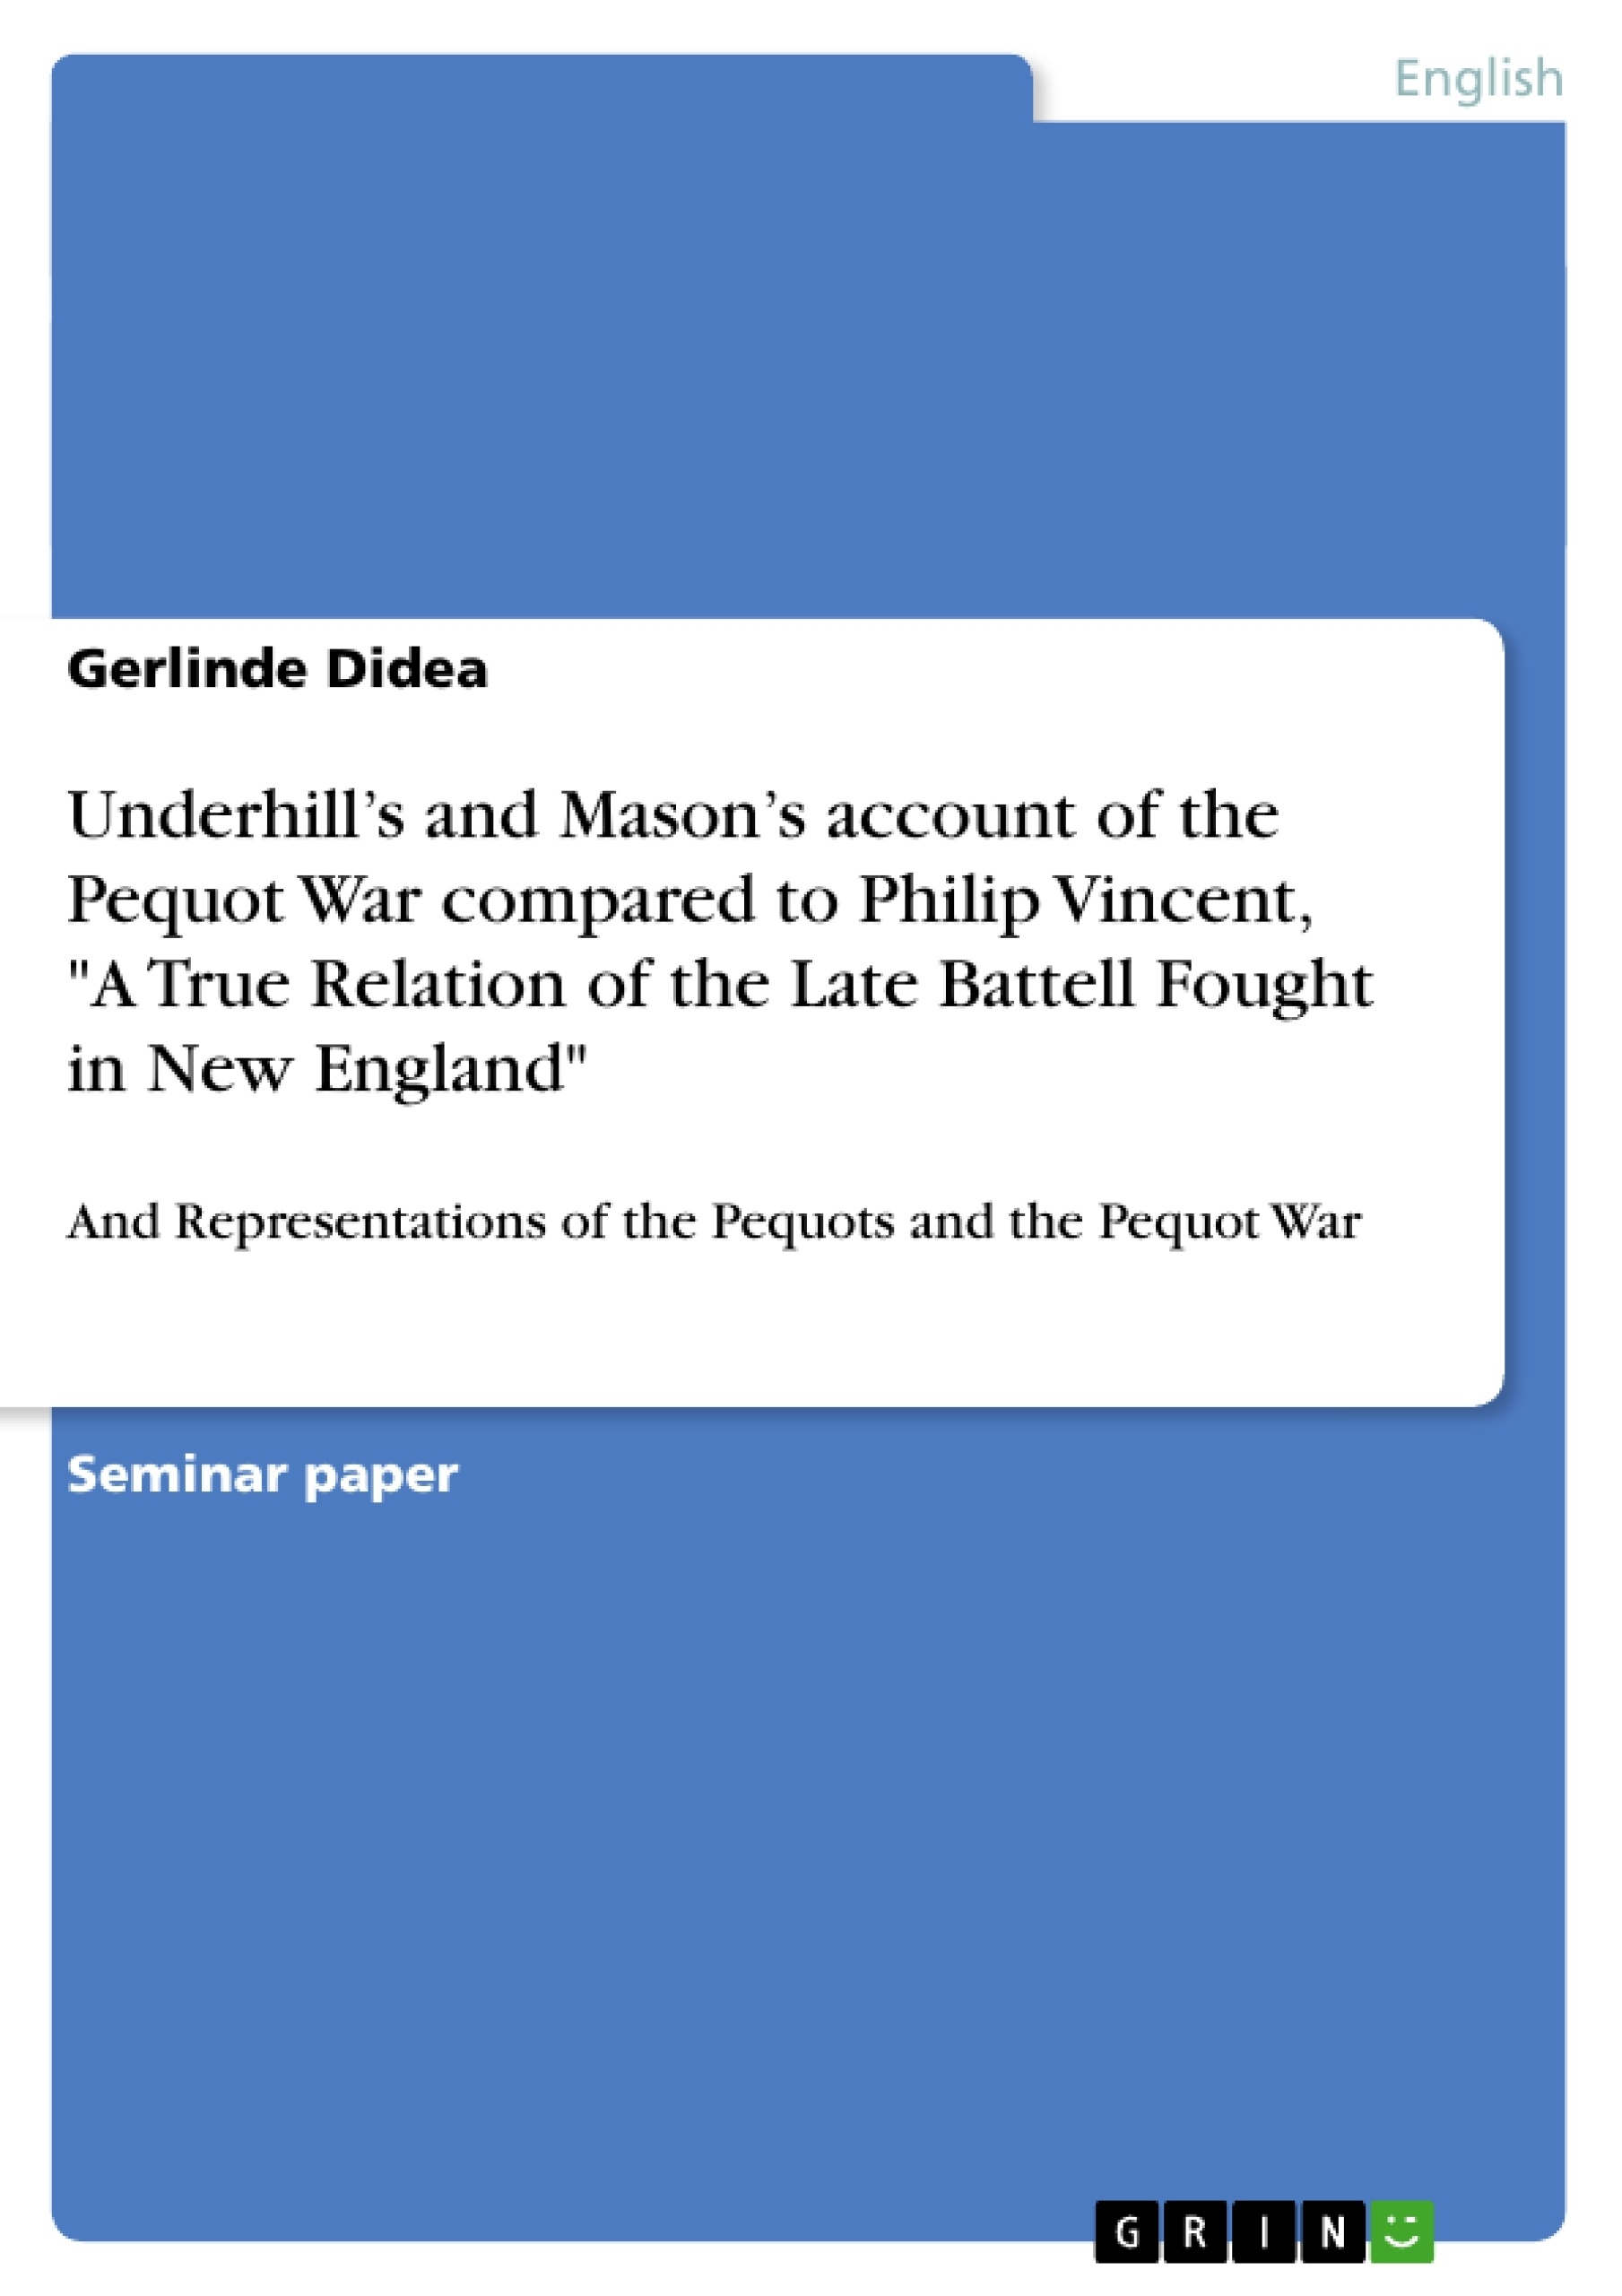 what caused the pequot war